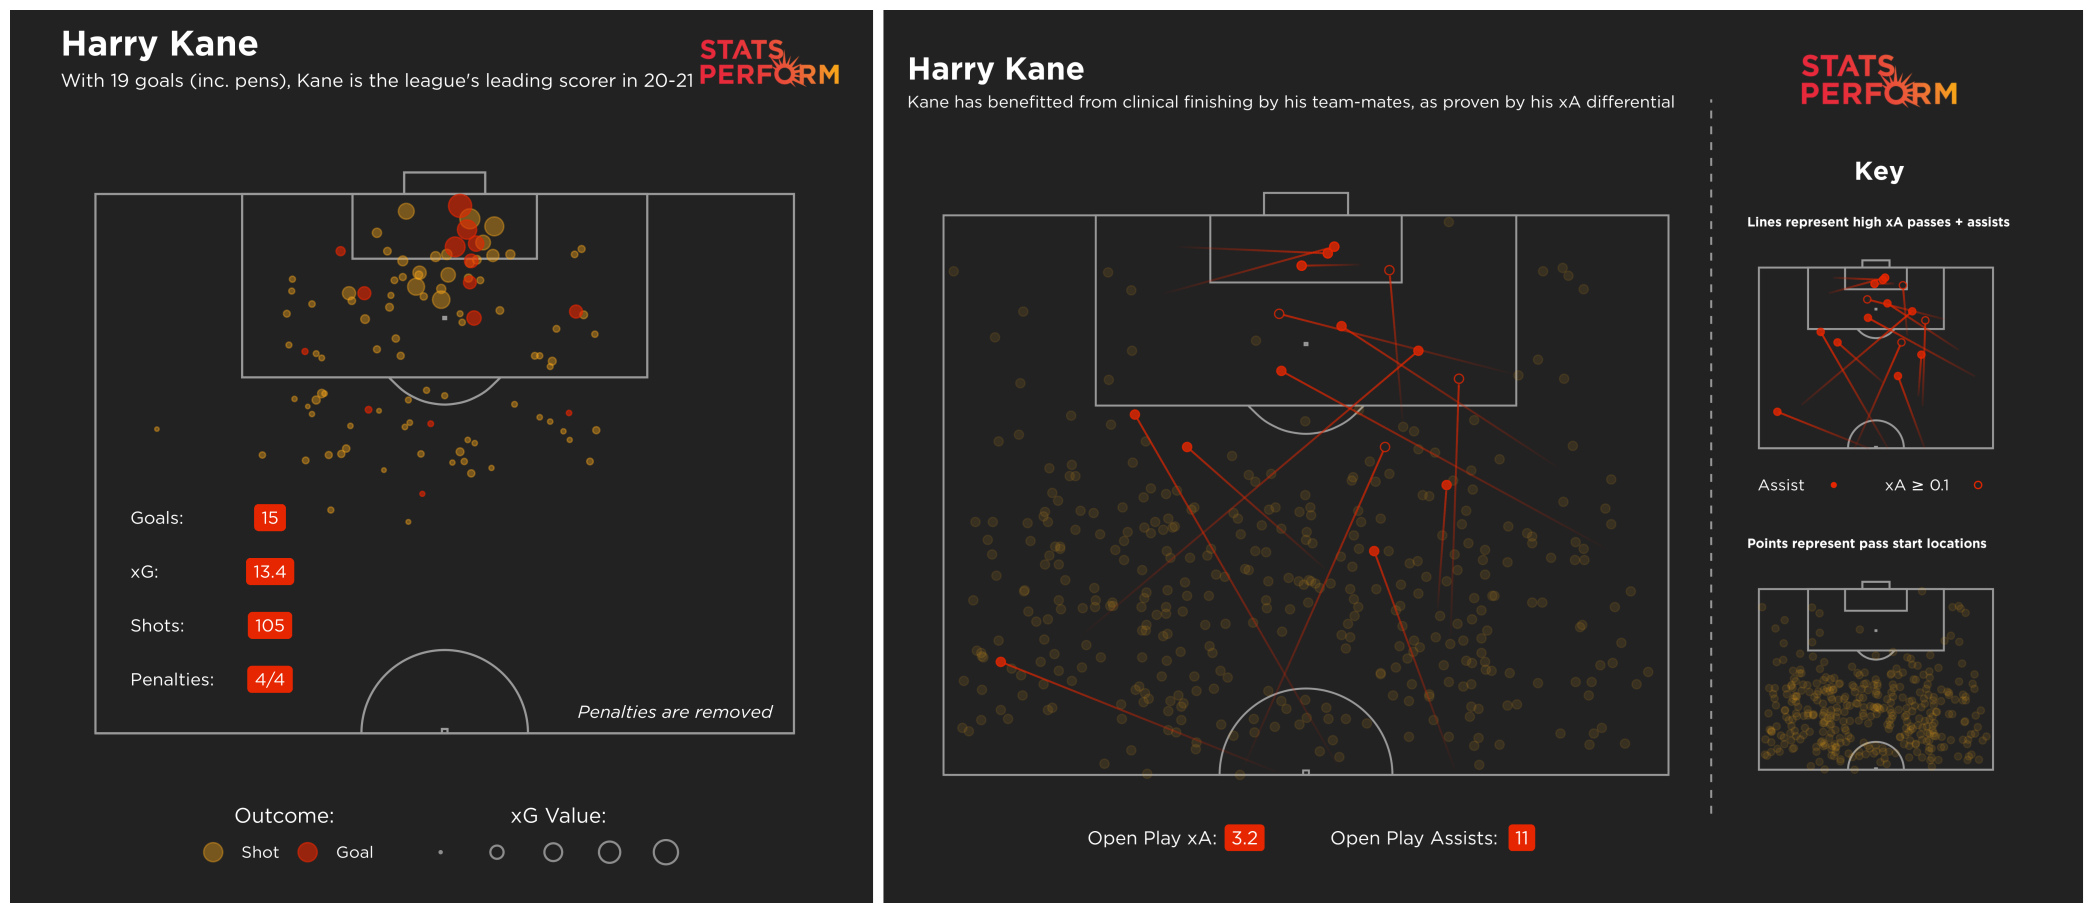 Could Harry Kane become only the second player in Premier League history to top the scoring and assist charts at the end of the season